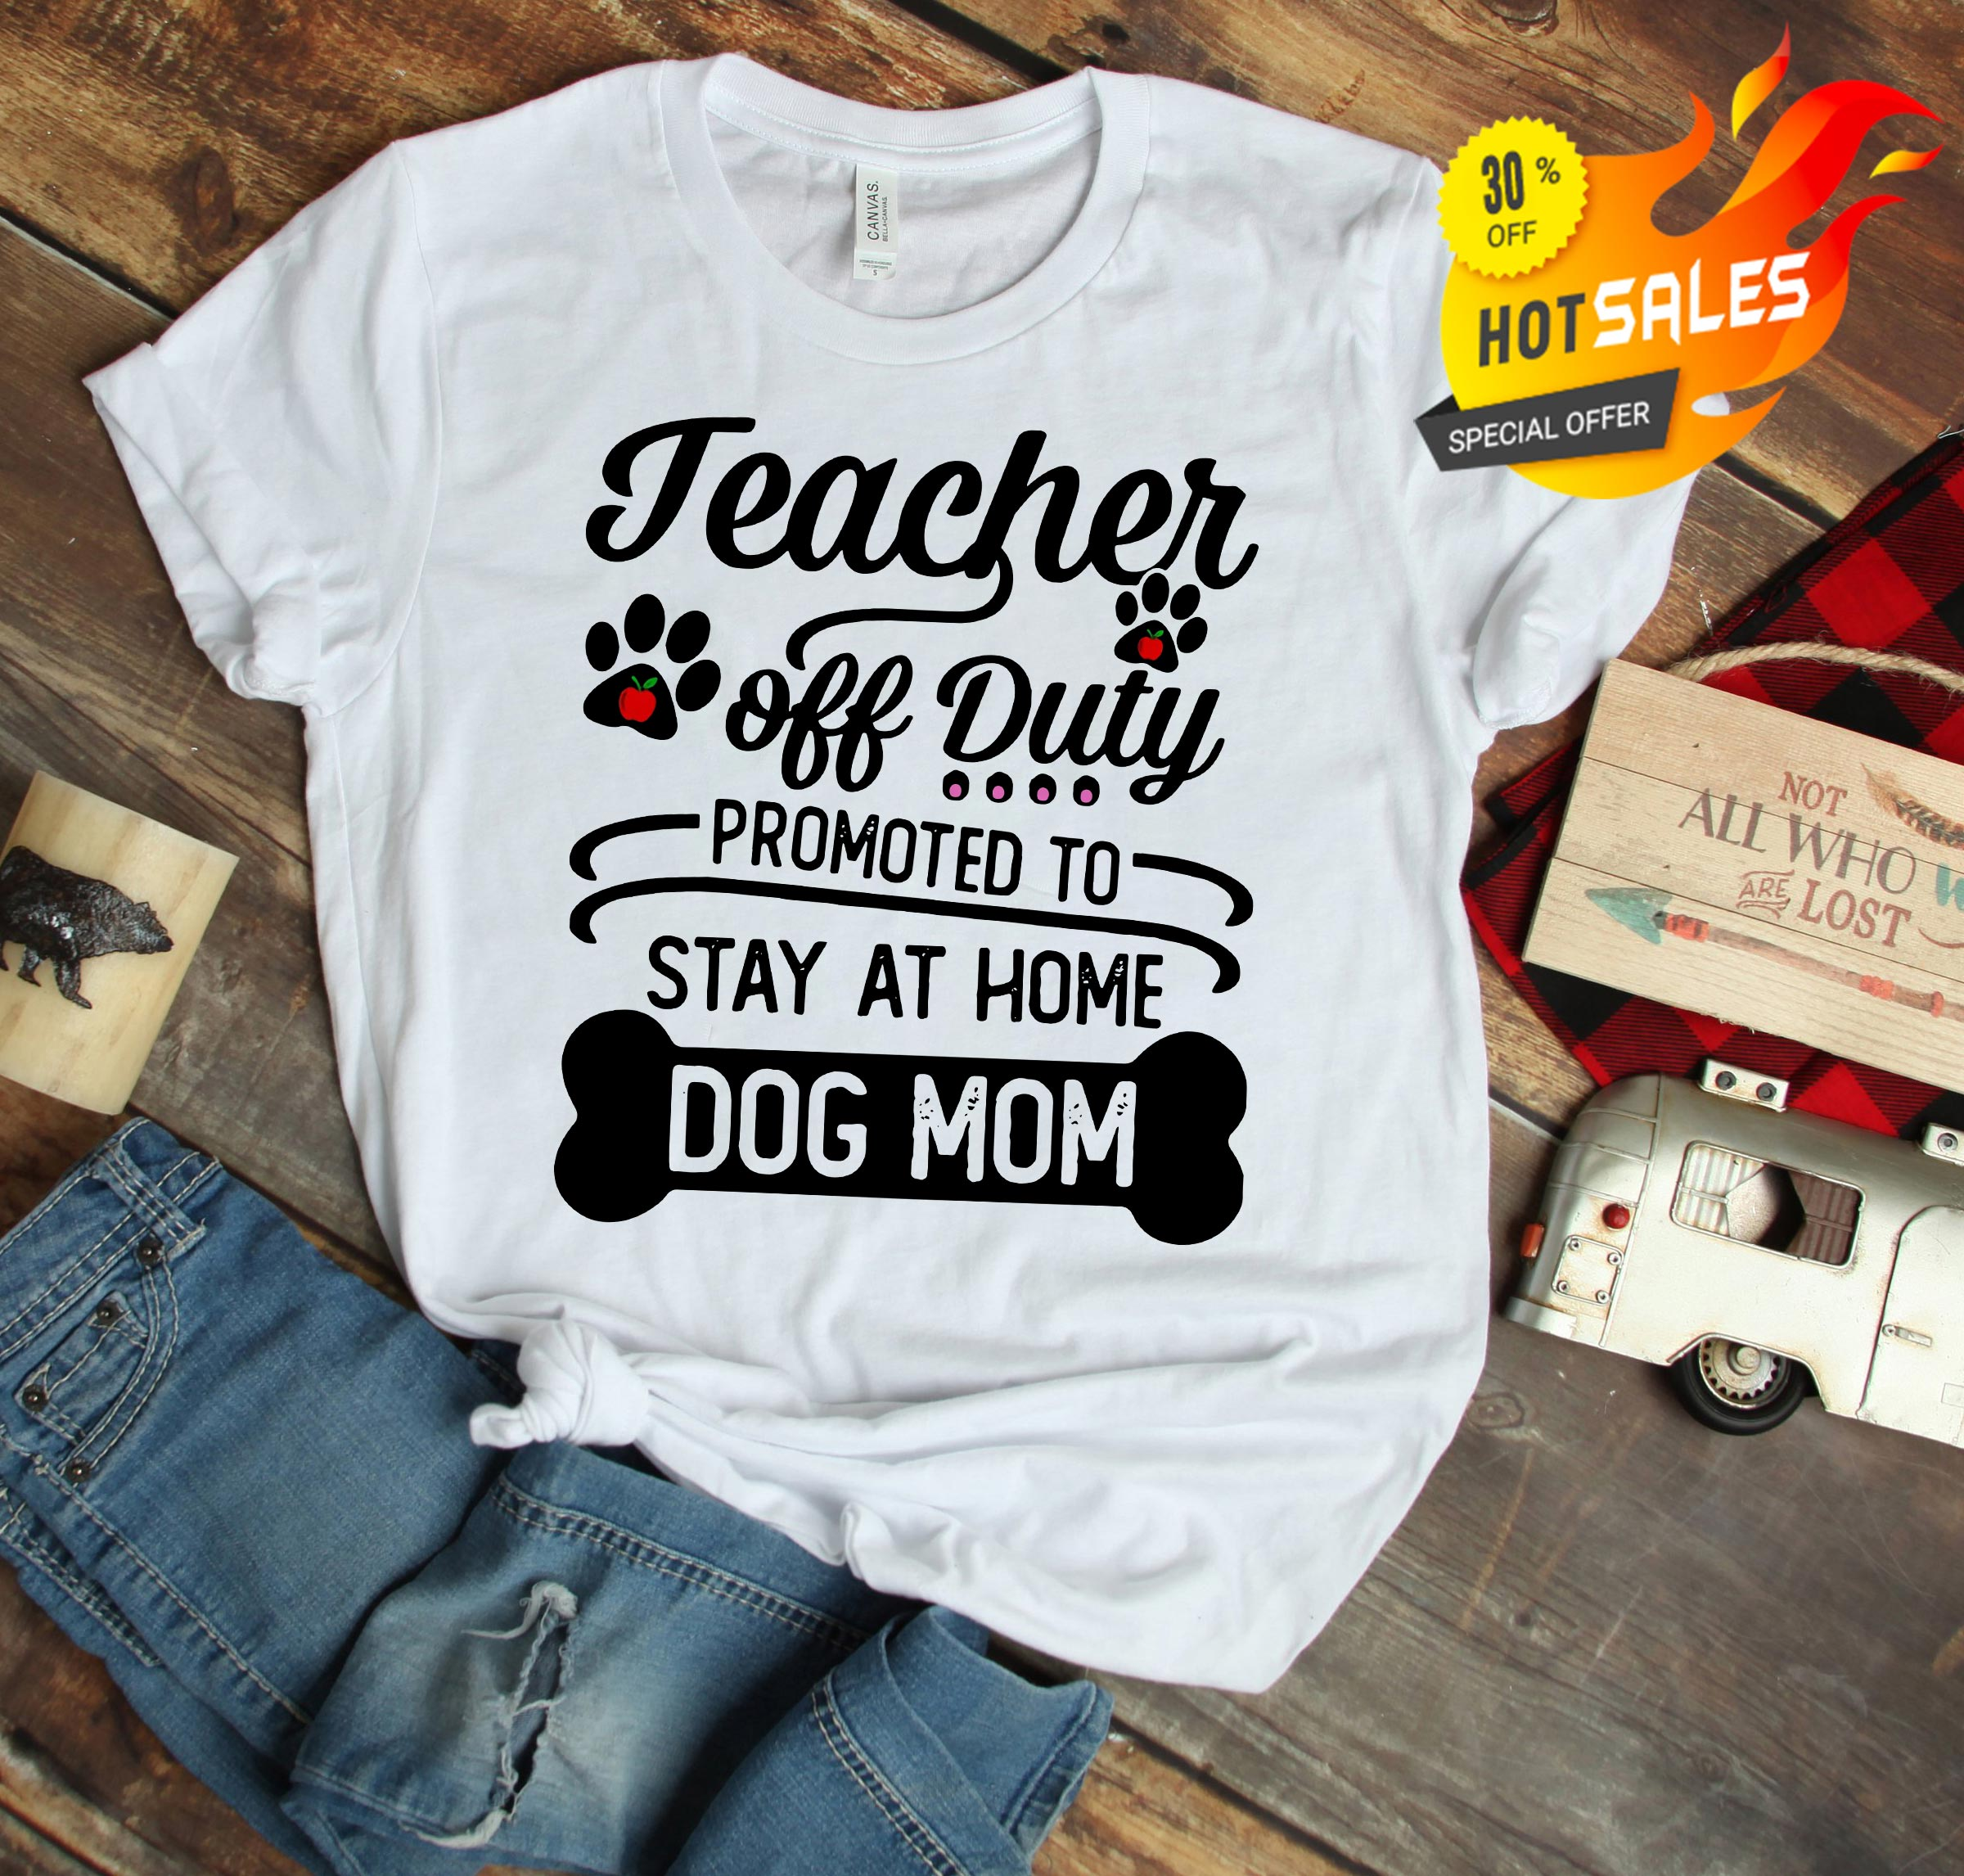 af7ce52193ef Teacher off duty promoted to stay at home dog mom shirt, tank top ...